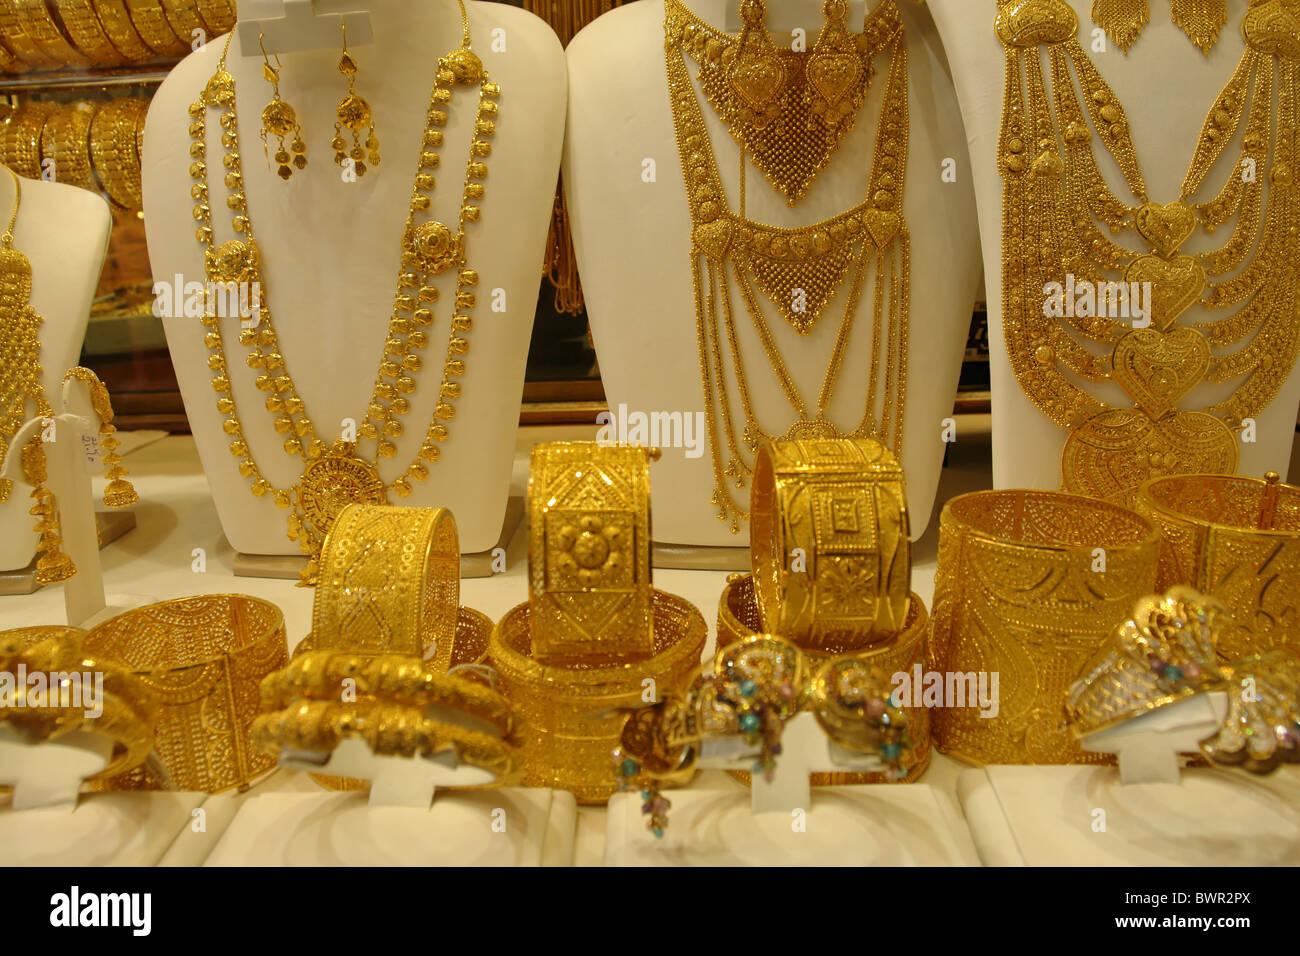 emirates dubai east united photo gold souq uae middle arab asia stock city jewelry